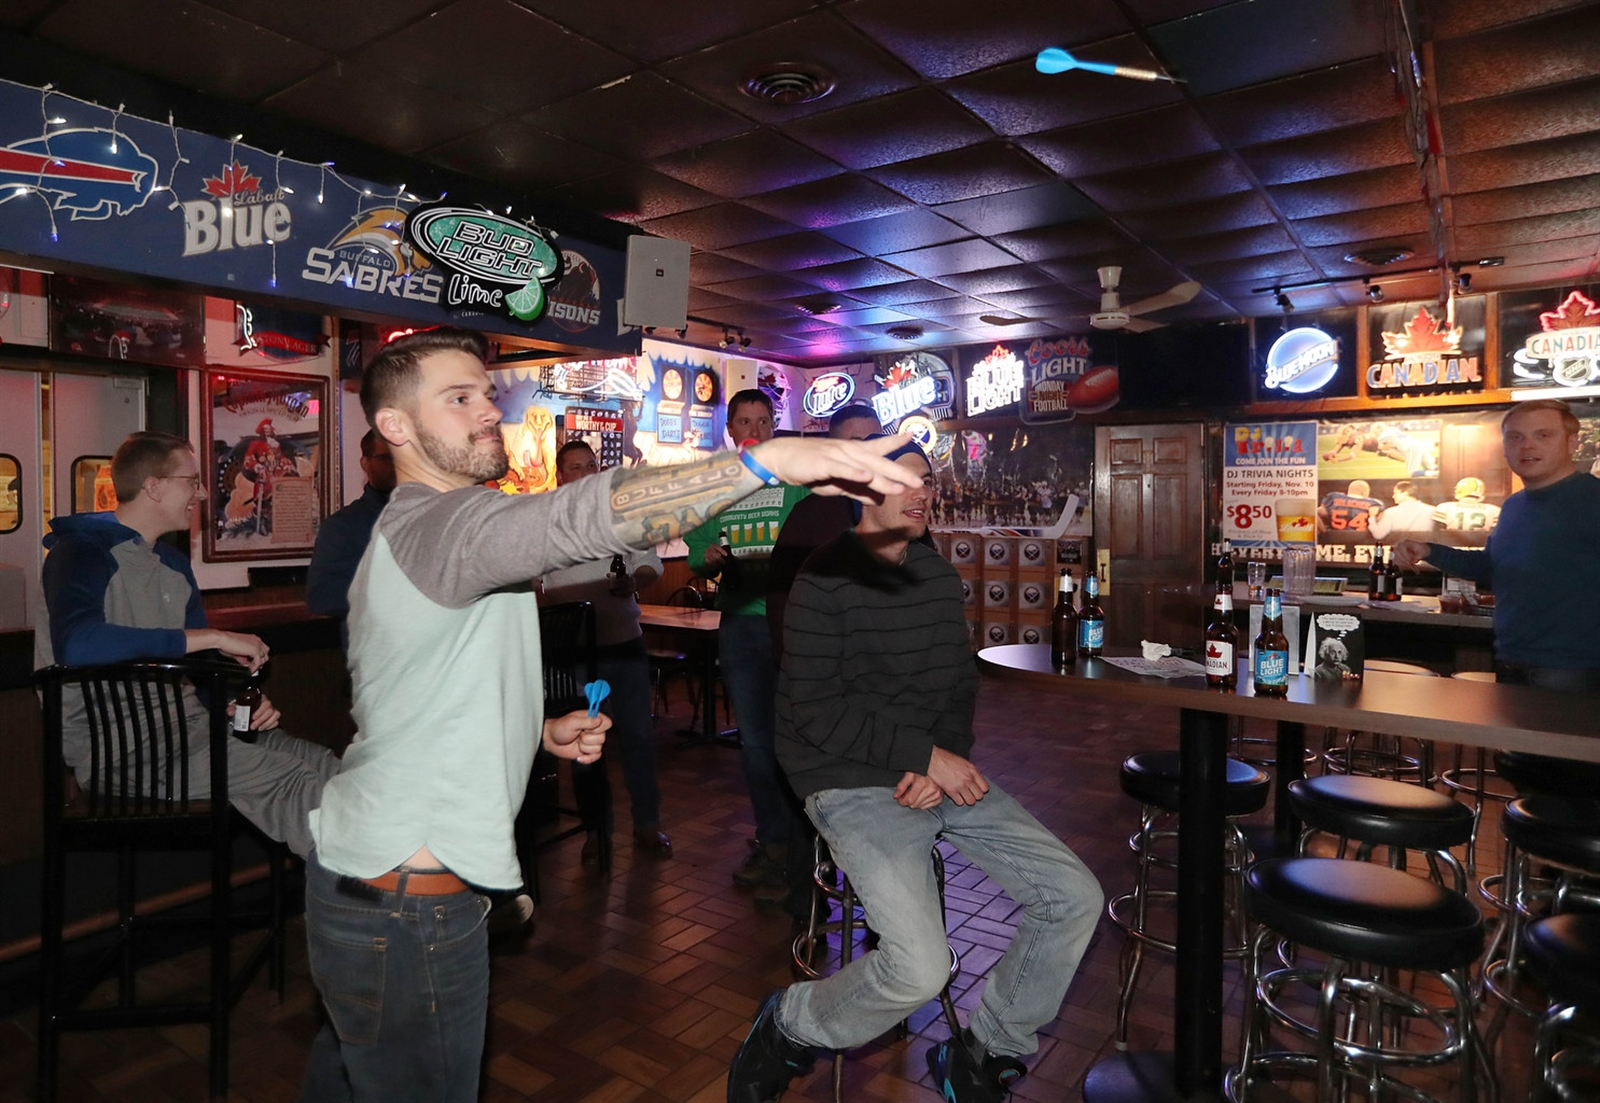 Corey Santonocito, of Depew, shoots darts, as he hangs out with former schoolmates of West Seneca West High School on their annual holiday outing, Thursday, Dec. 21, 2017.